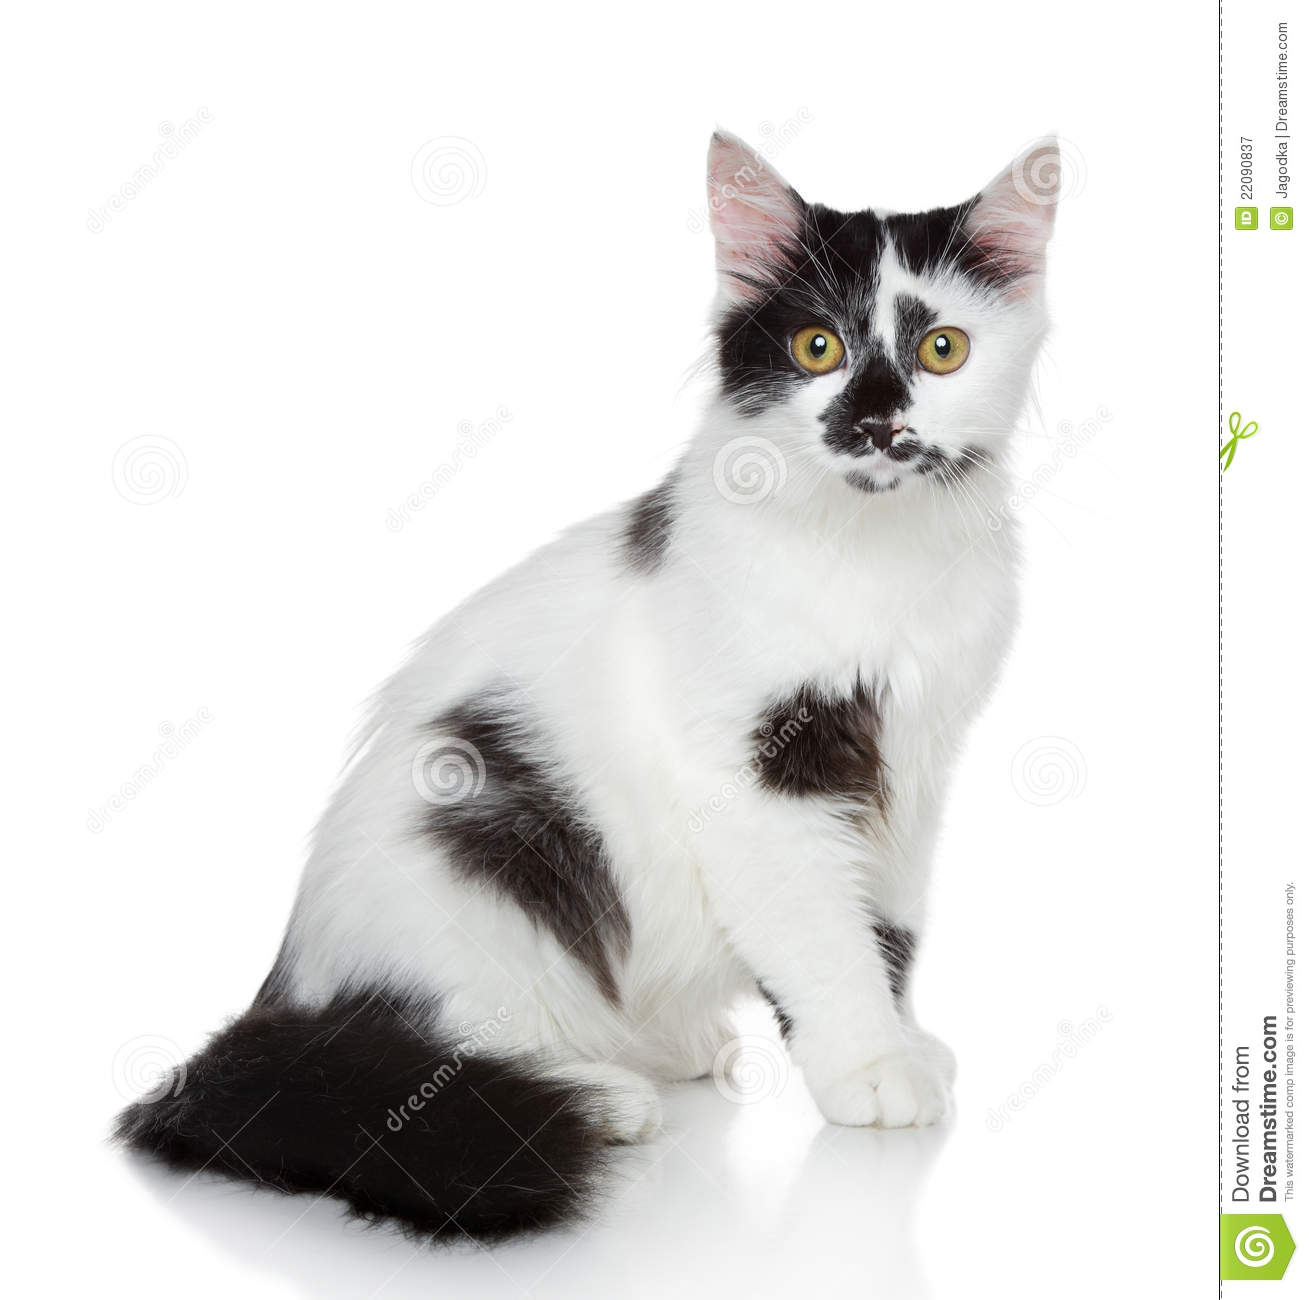 View topic - free warrior cat generator designs // closed to